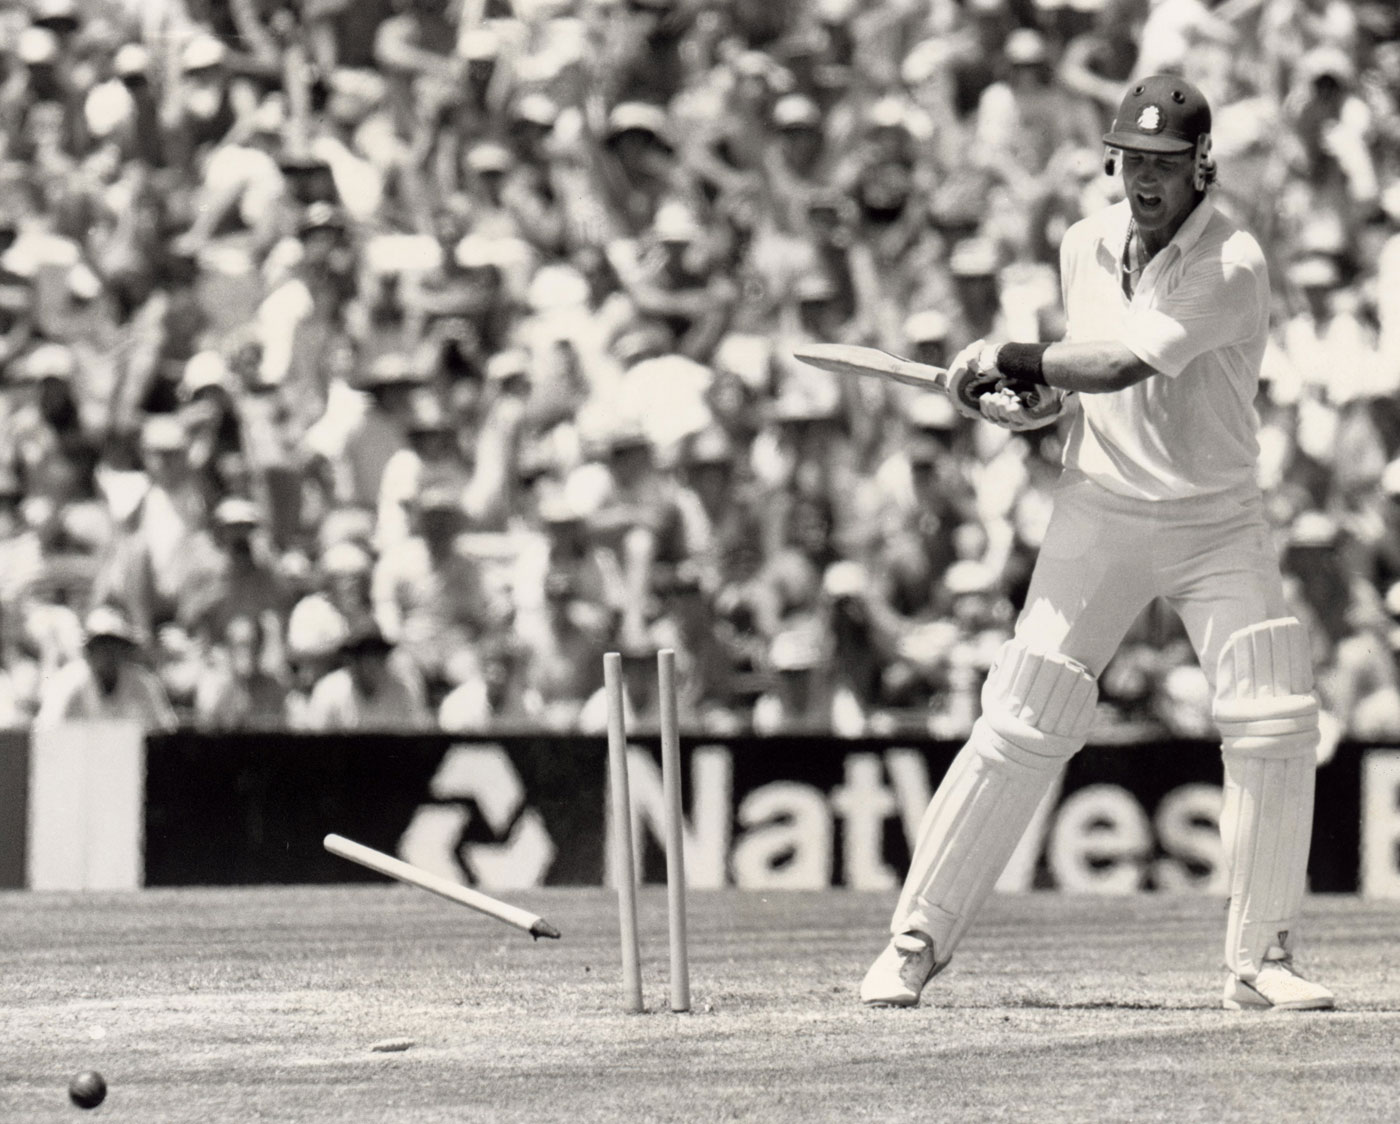 Broad smashes his stumps after being dismissed in the Sydney Test early in 1988. What did he do after being dropped in the series against West Indies later in the year? Answers on a postcard